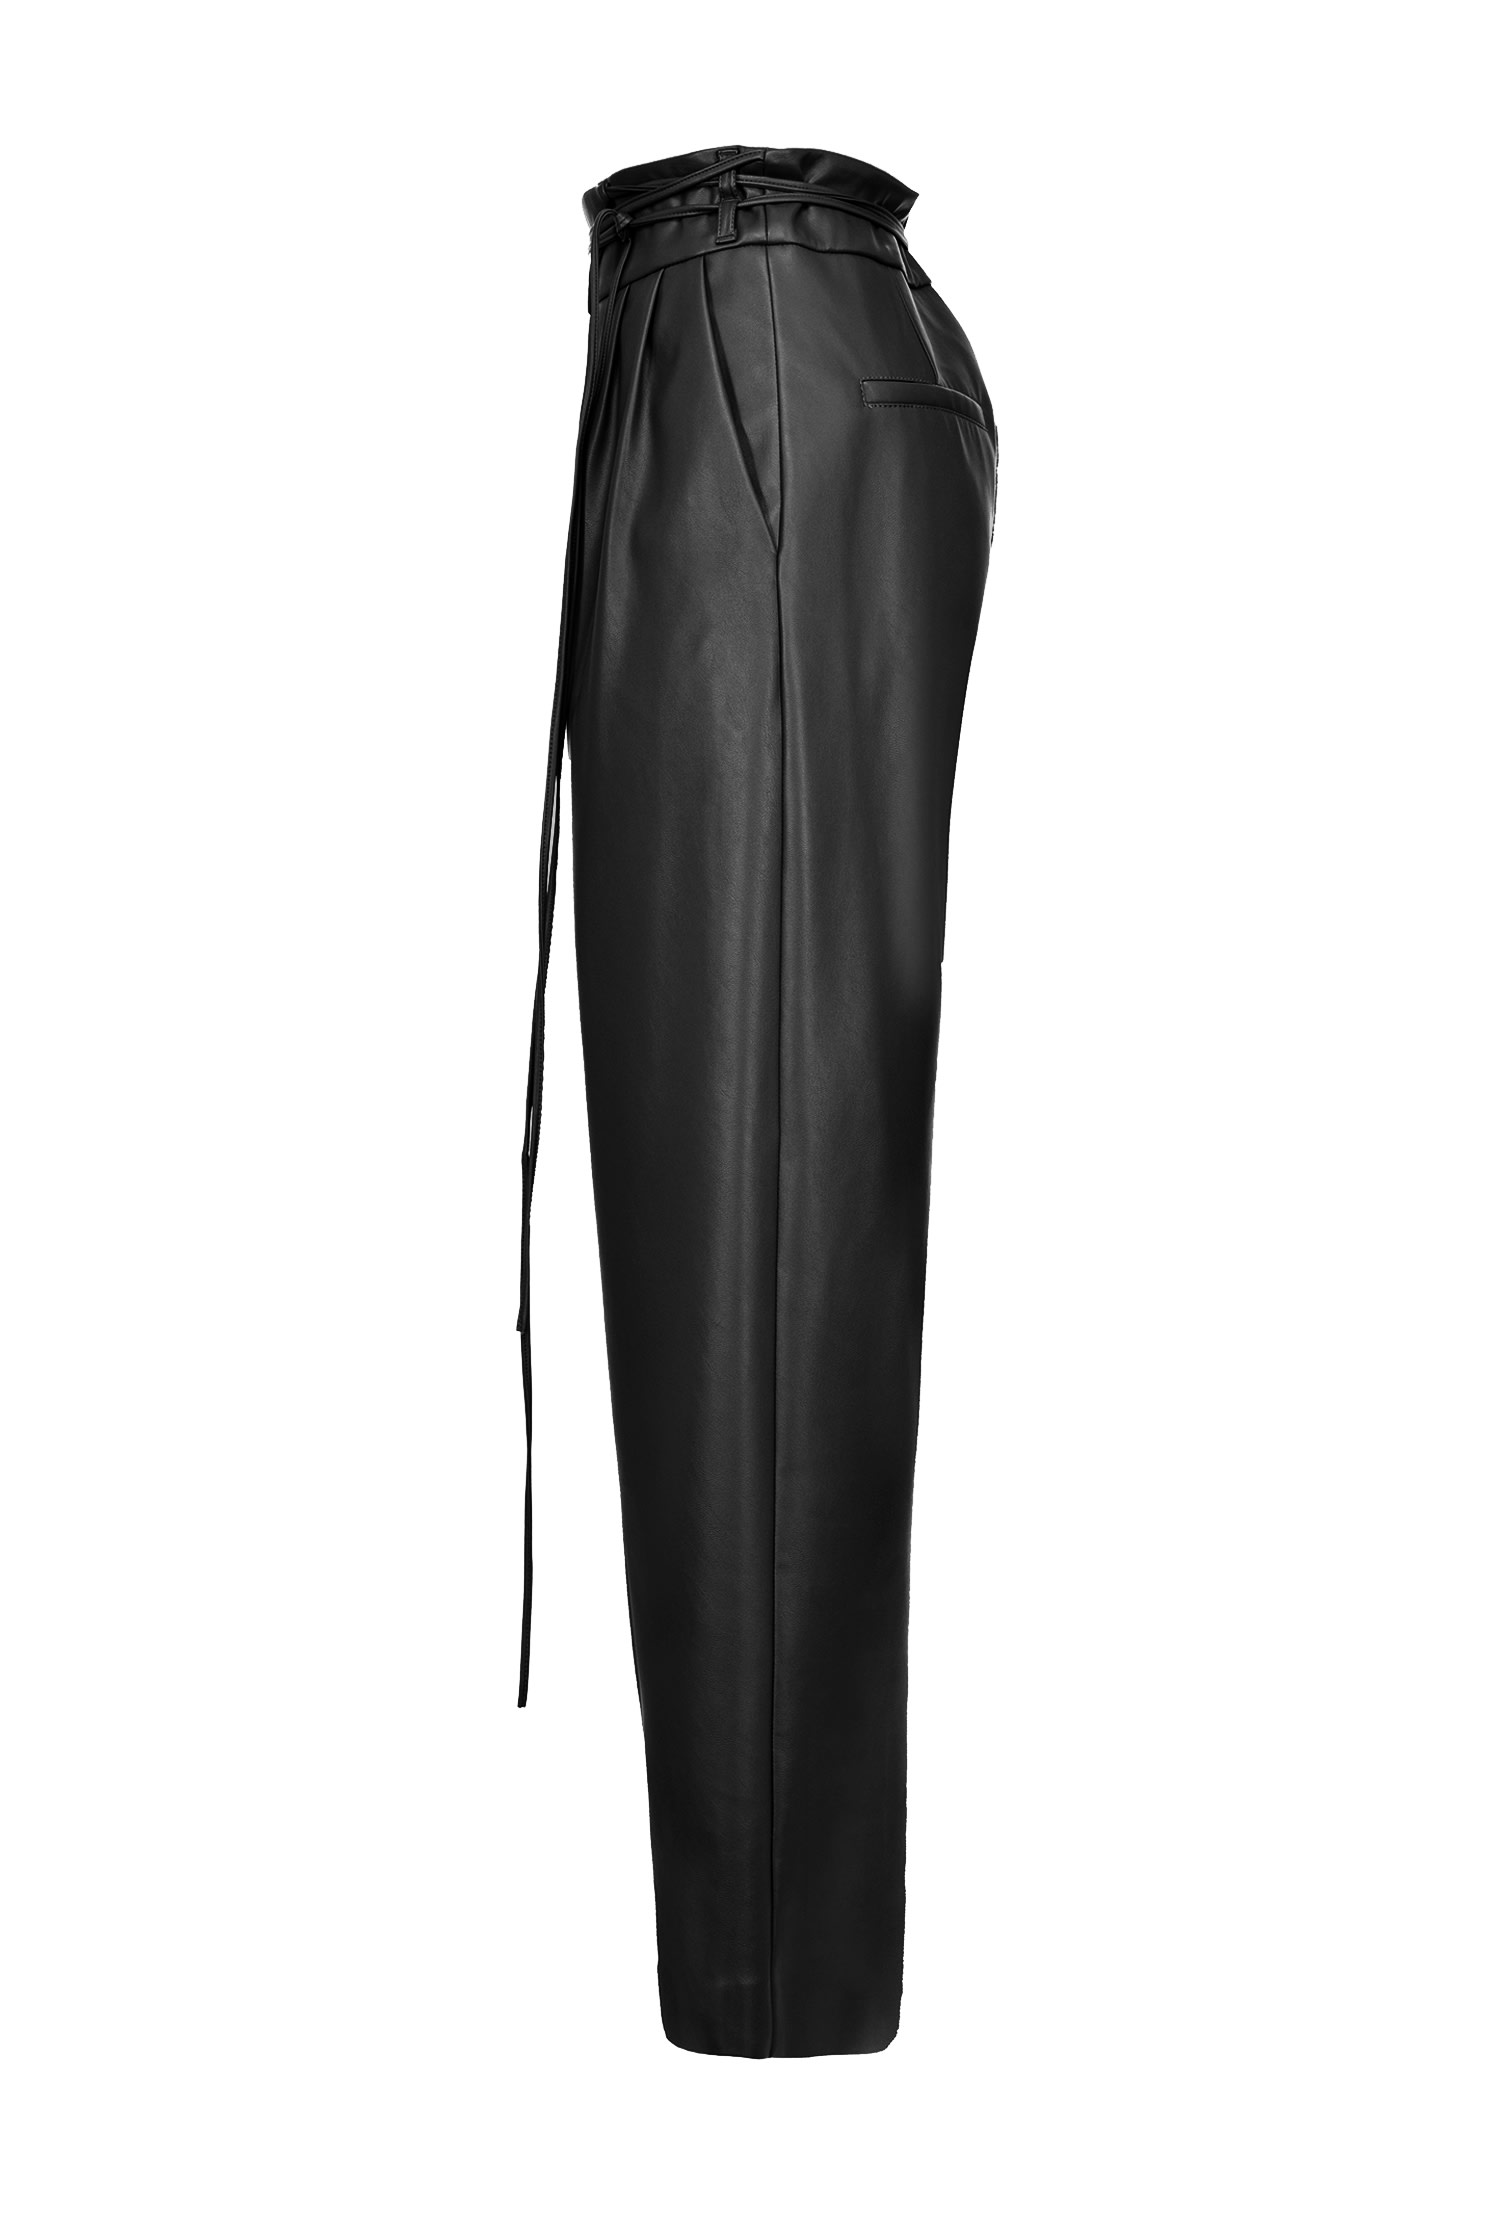 Leather-look Trousers With Narrow Belt Black